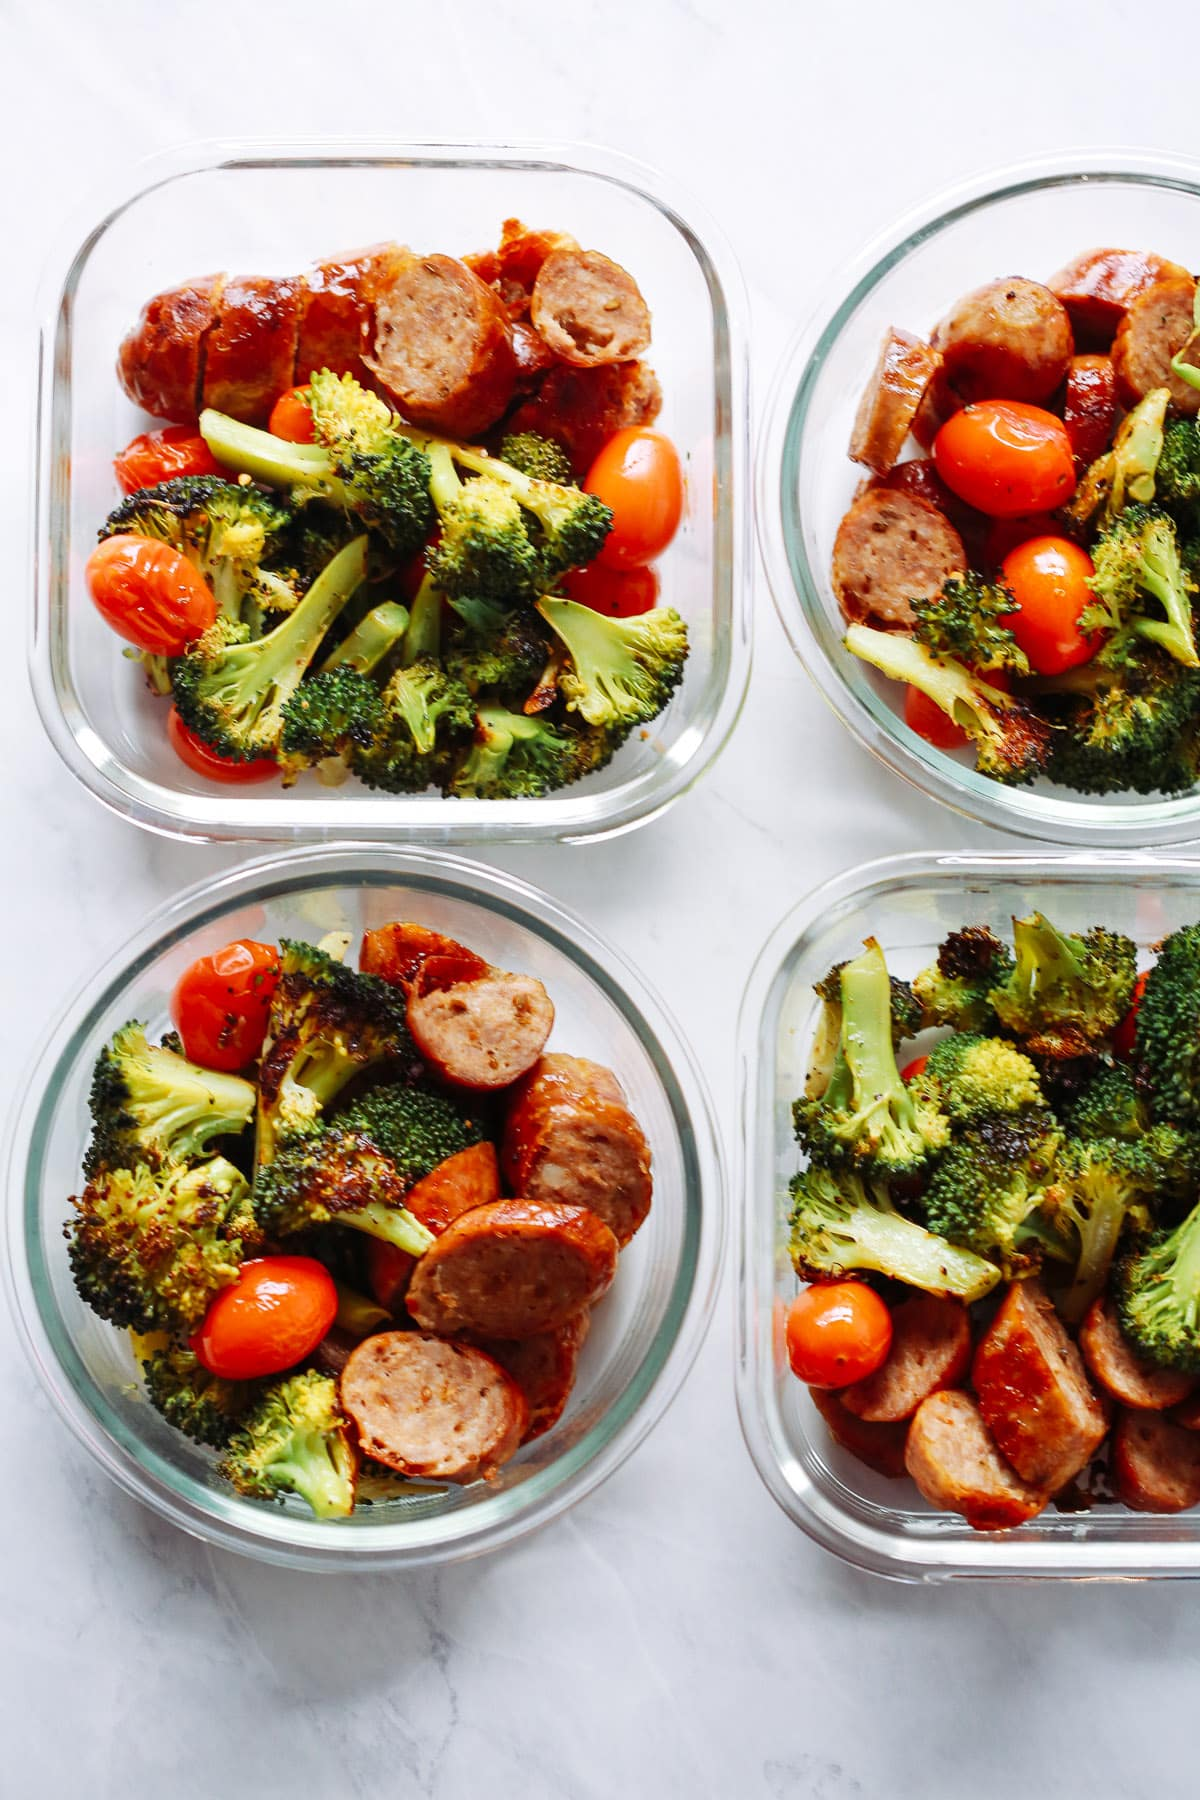 Two square and two circular meal prep containers containing sausage and vegetables.